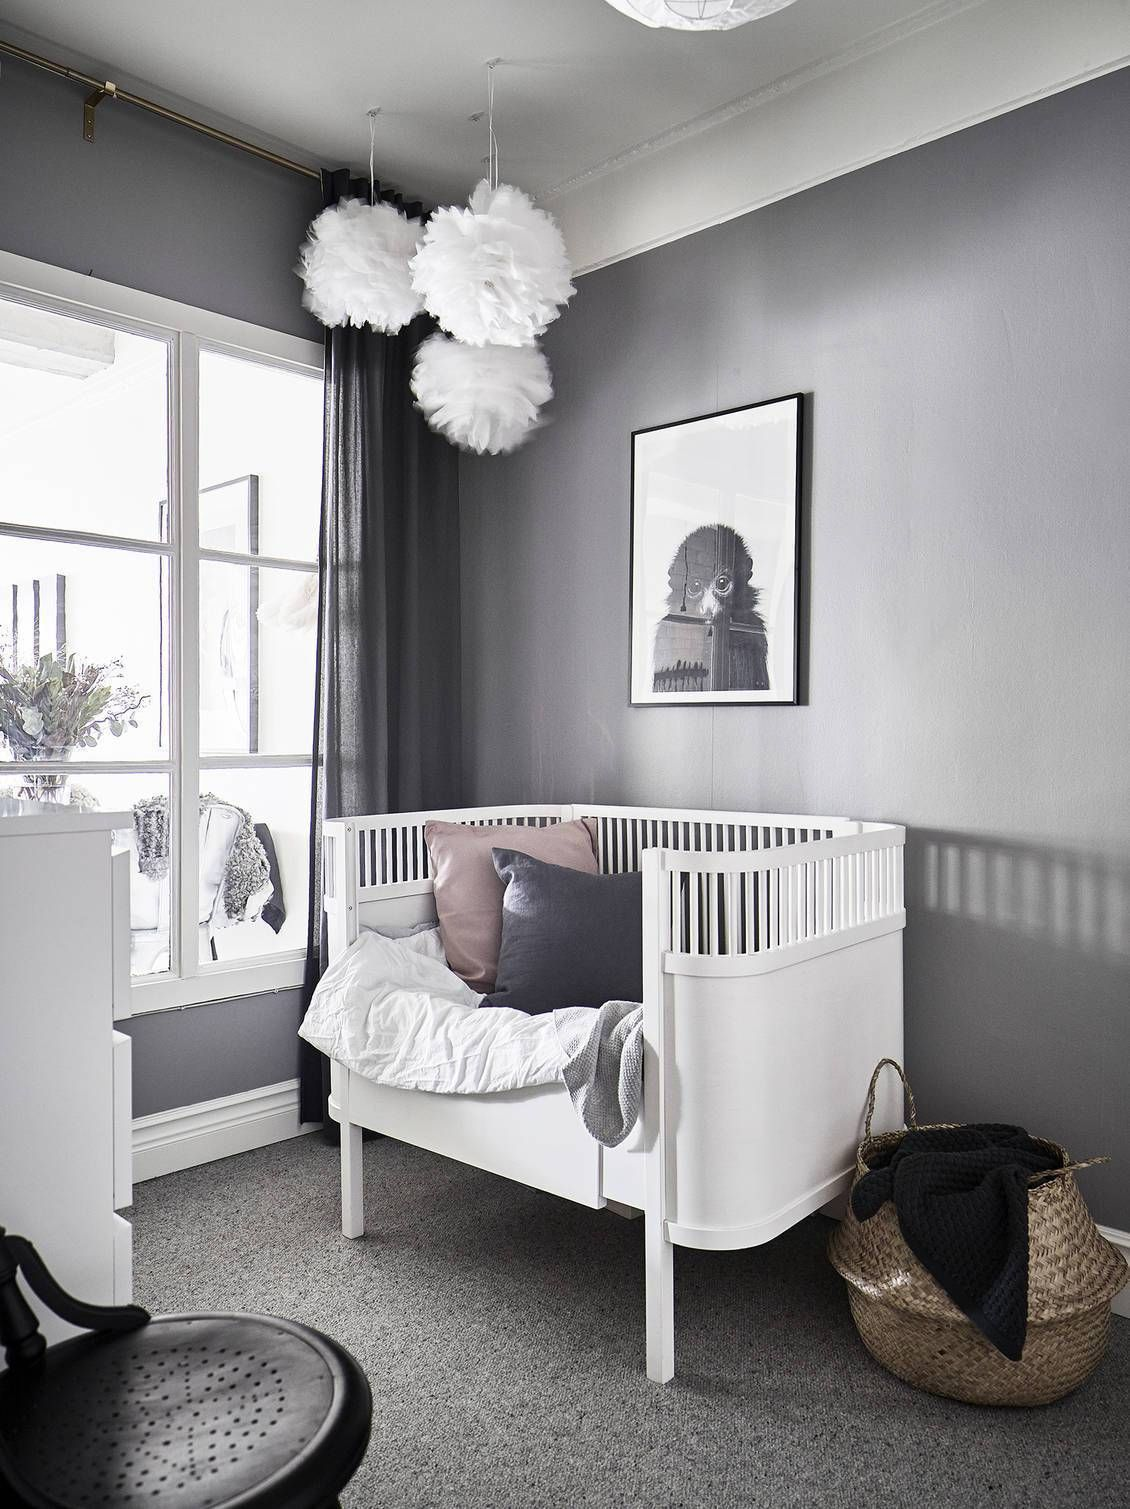 Une Version Scandinave Du Loft New Yorkais Planete Deco A Homes World Babysovrum Une Version Scandinave Du Loft Ne Babyzimmer Kinder Zimmer Inneneinrichtung